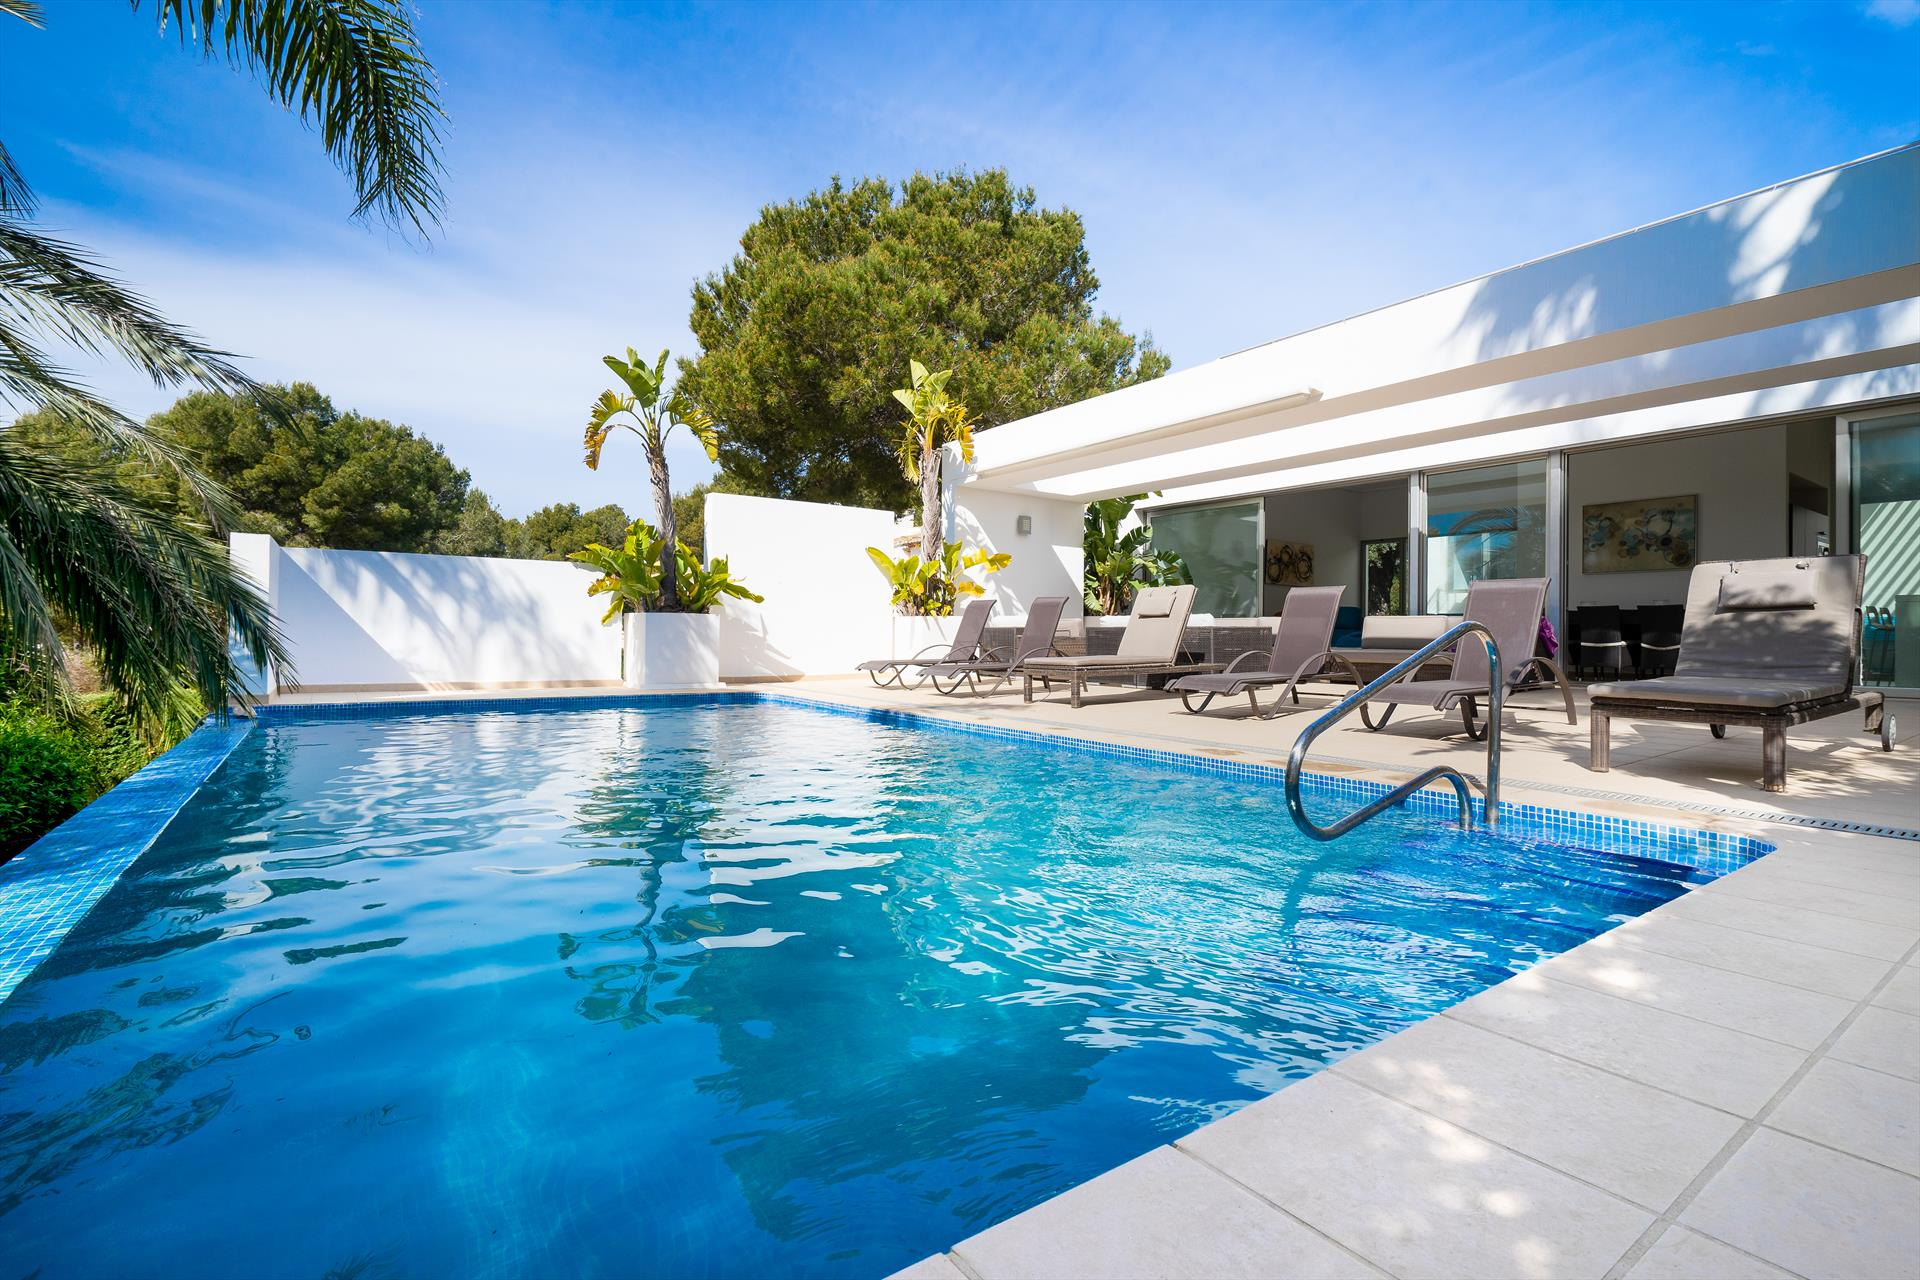 Casa Elche 4 pax, Modern and nice villa  with heated pool in Javea, on the Costa Blanca, Spain for 4 persons.....